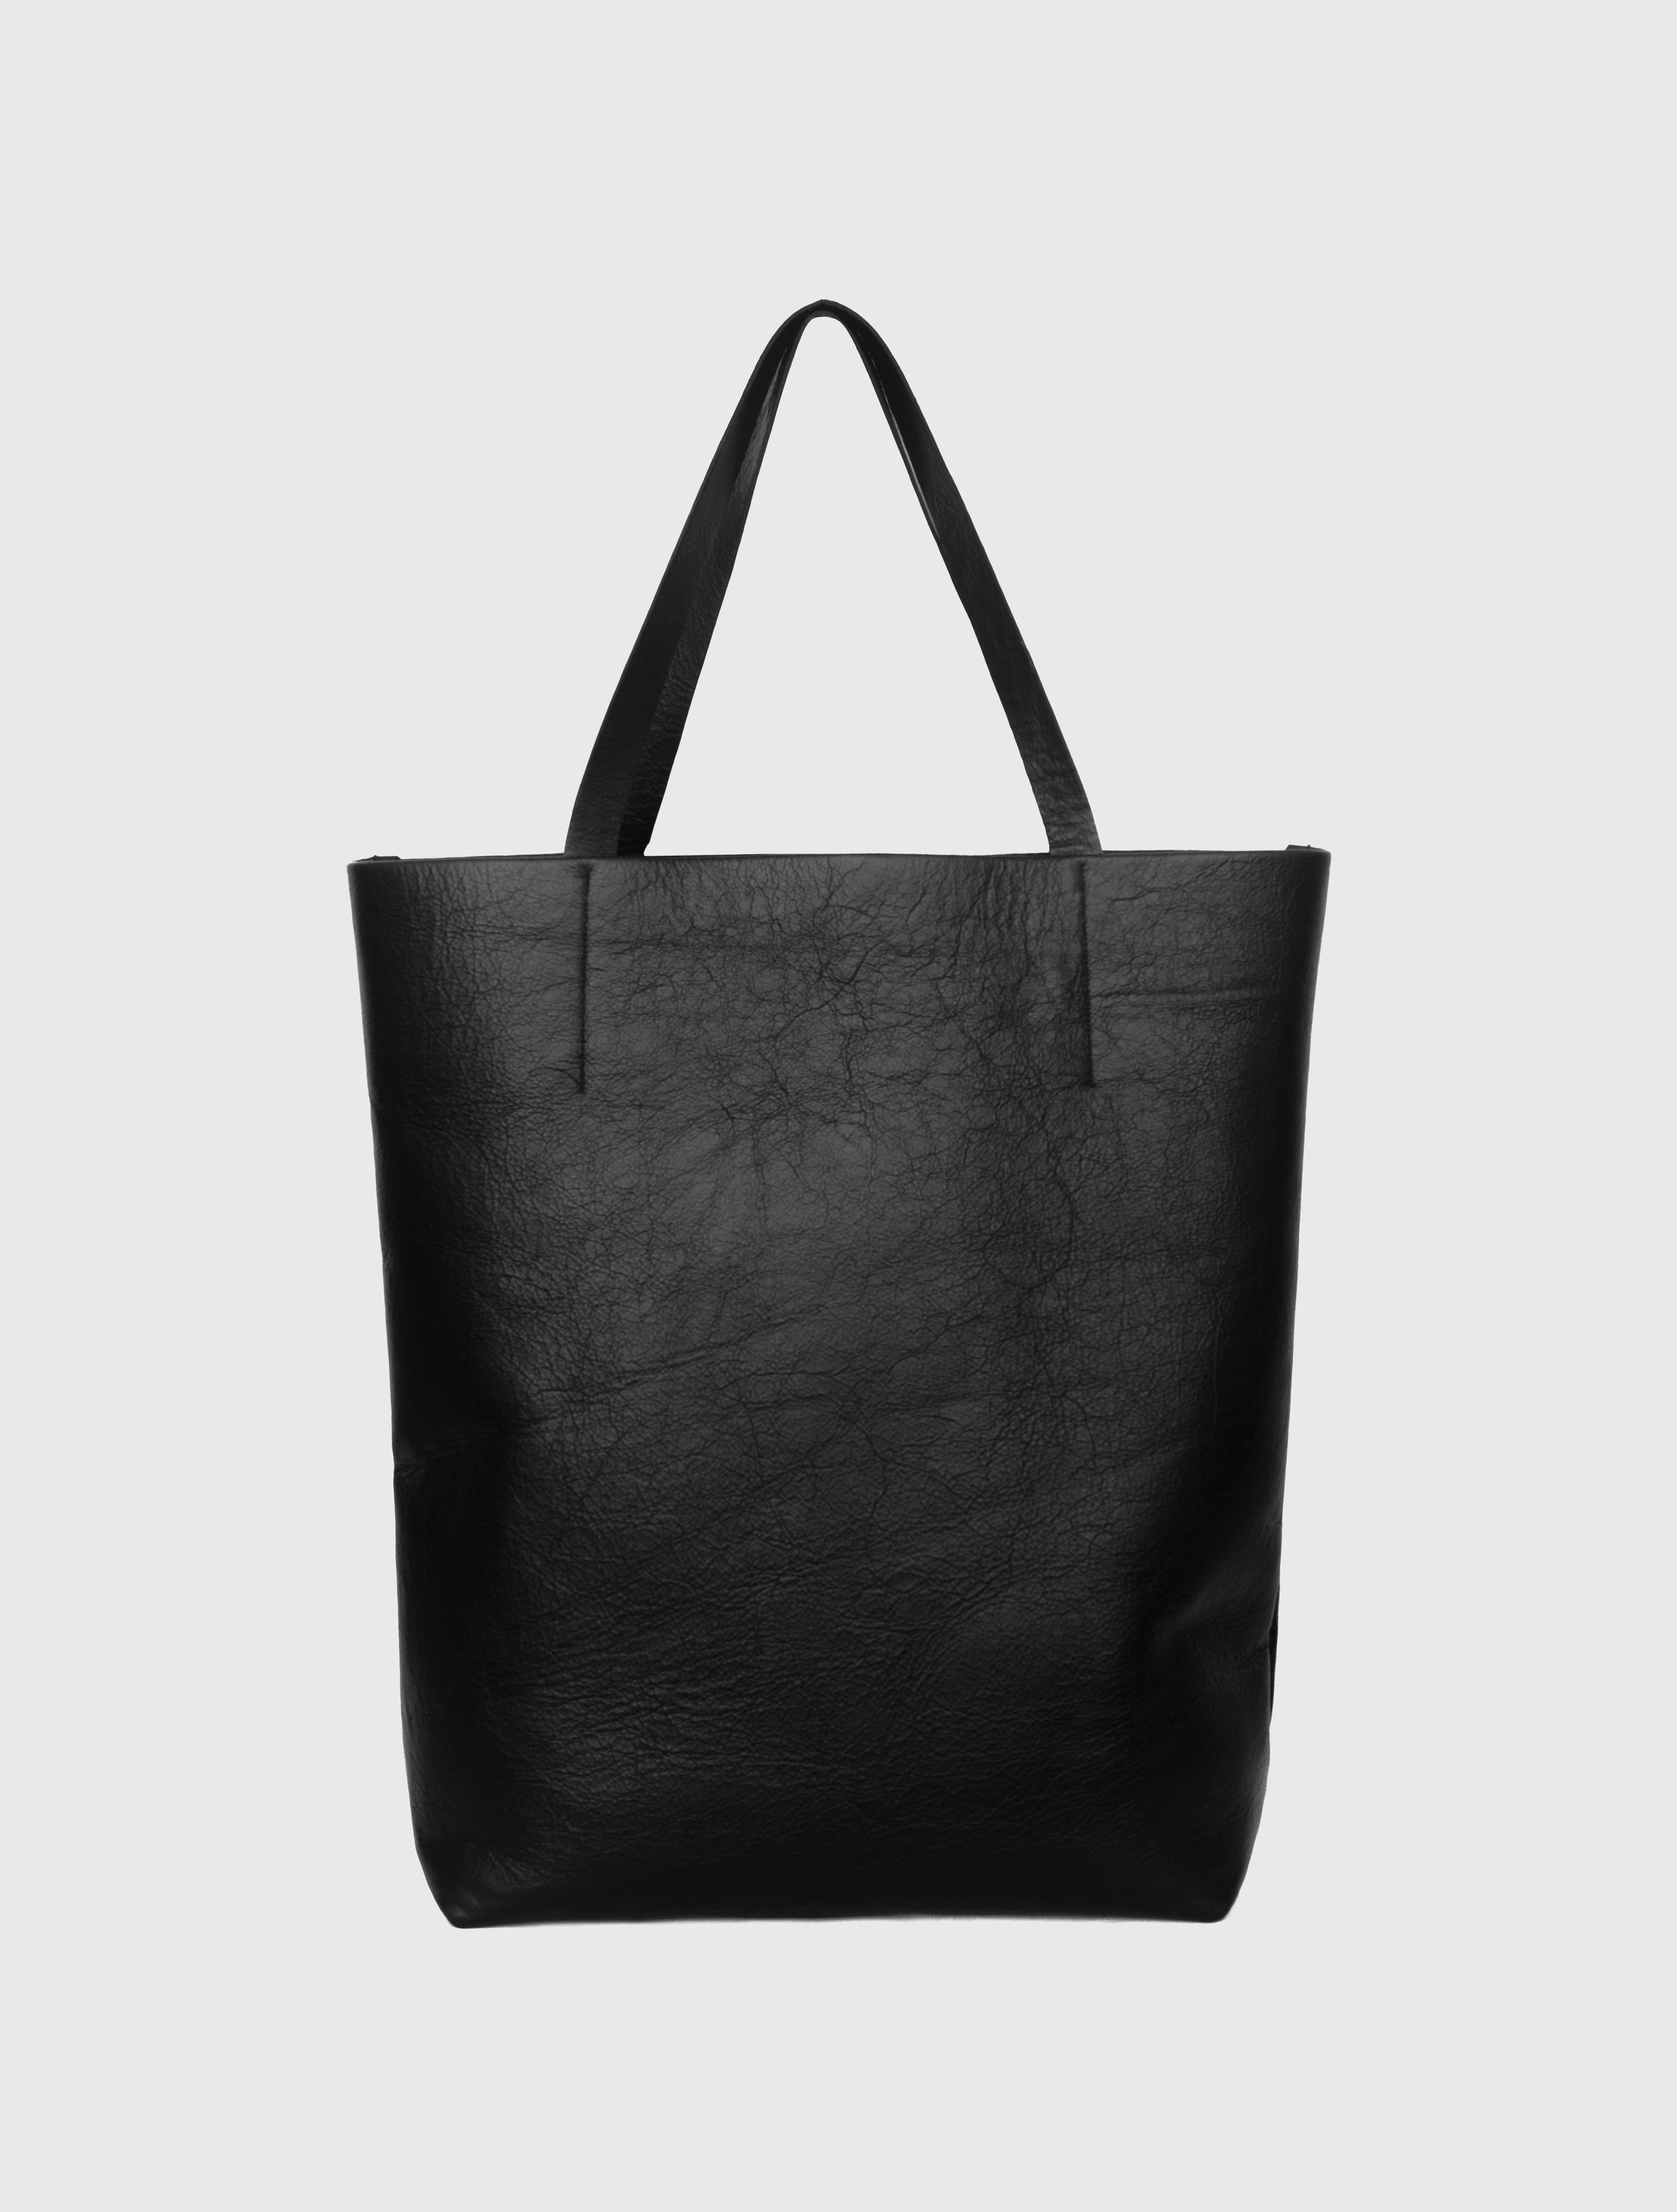 LEATHER X NEOPRENE TOTE BAG_0000_Layer 2.jpg